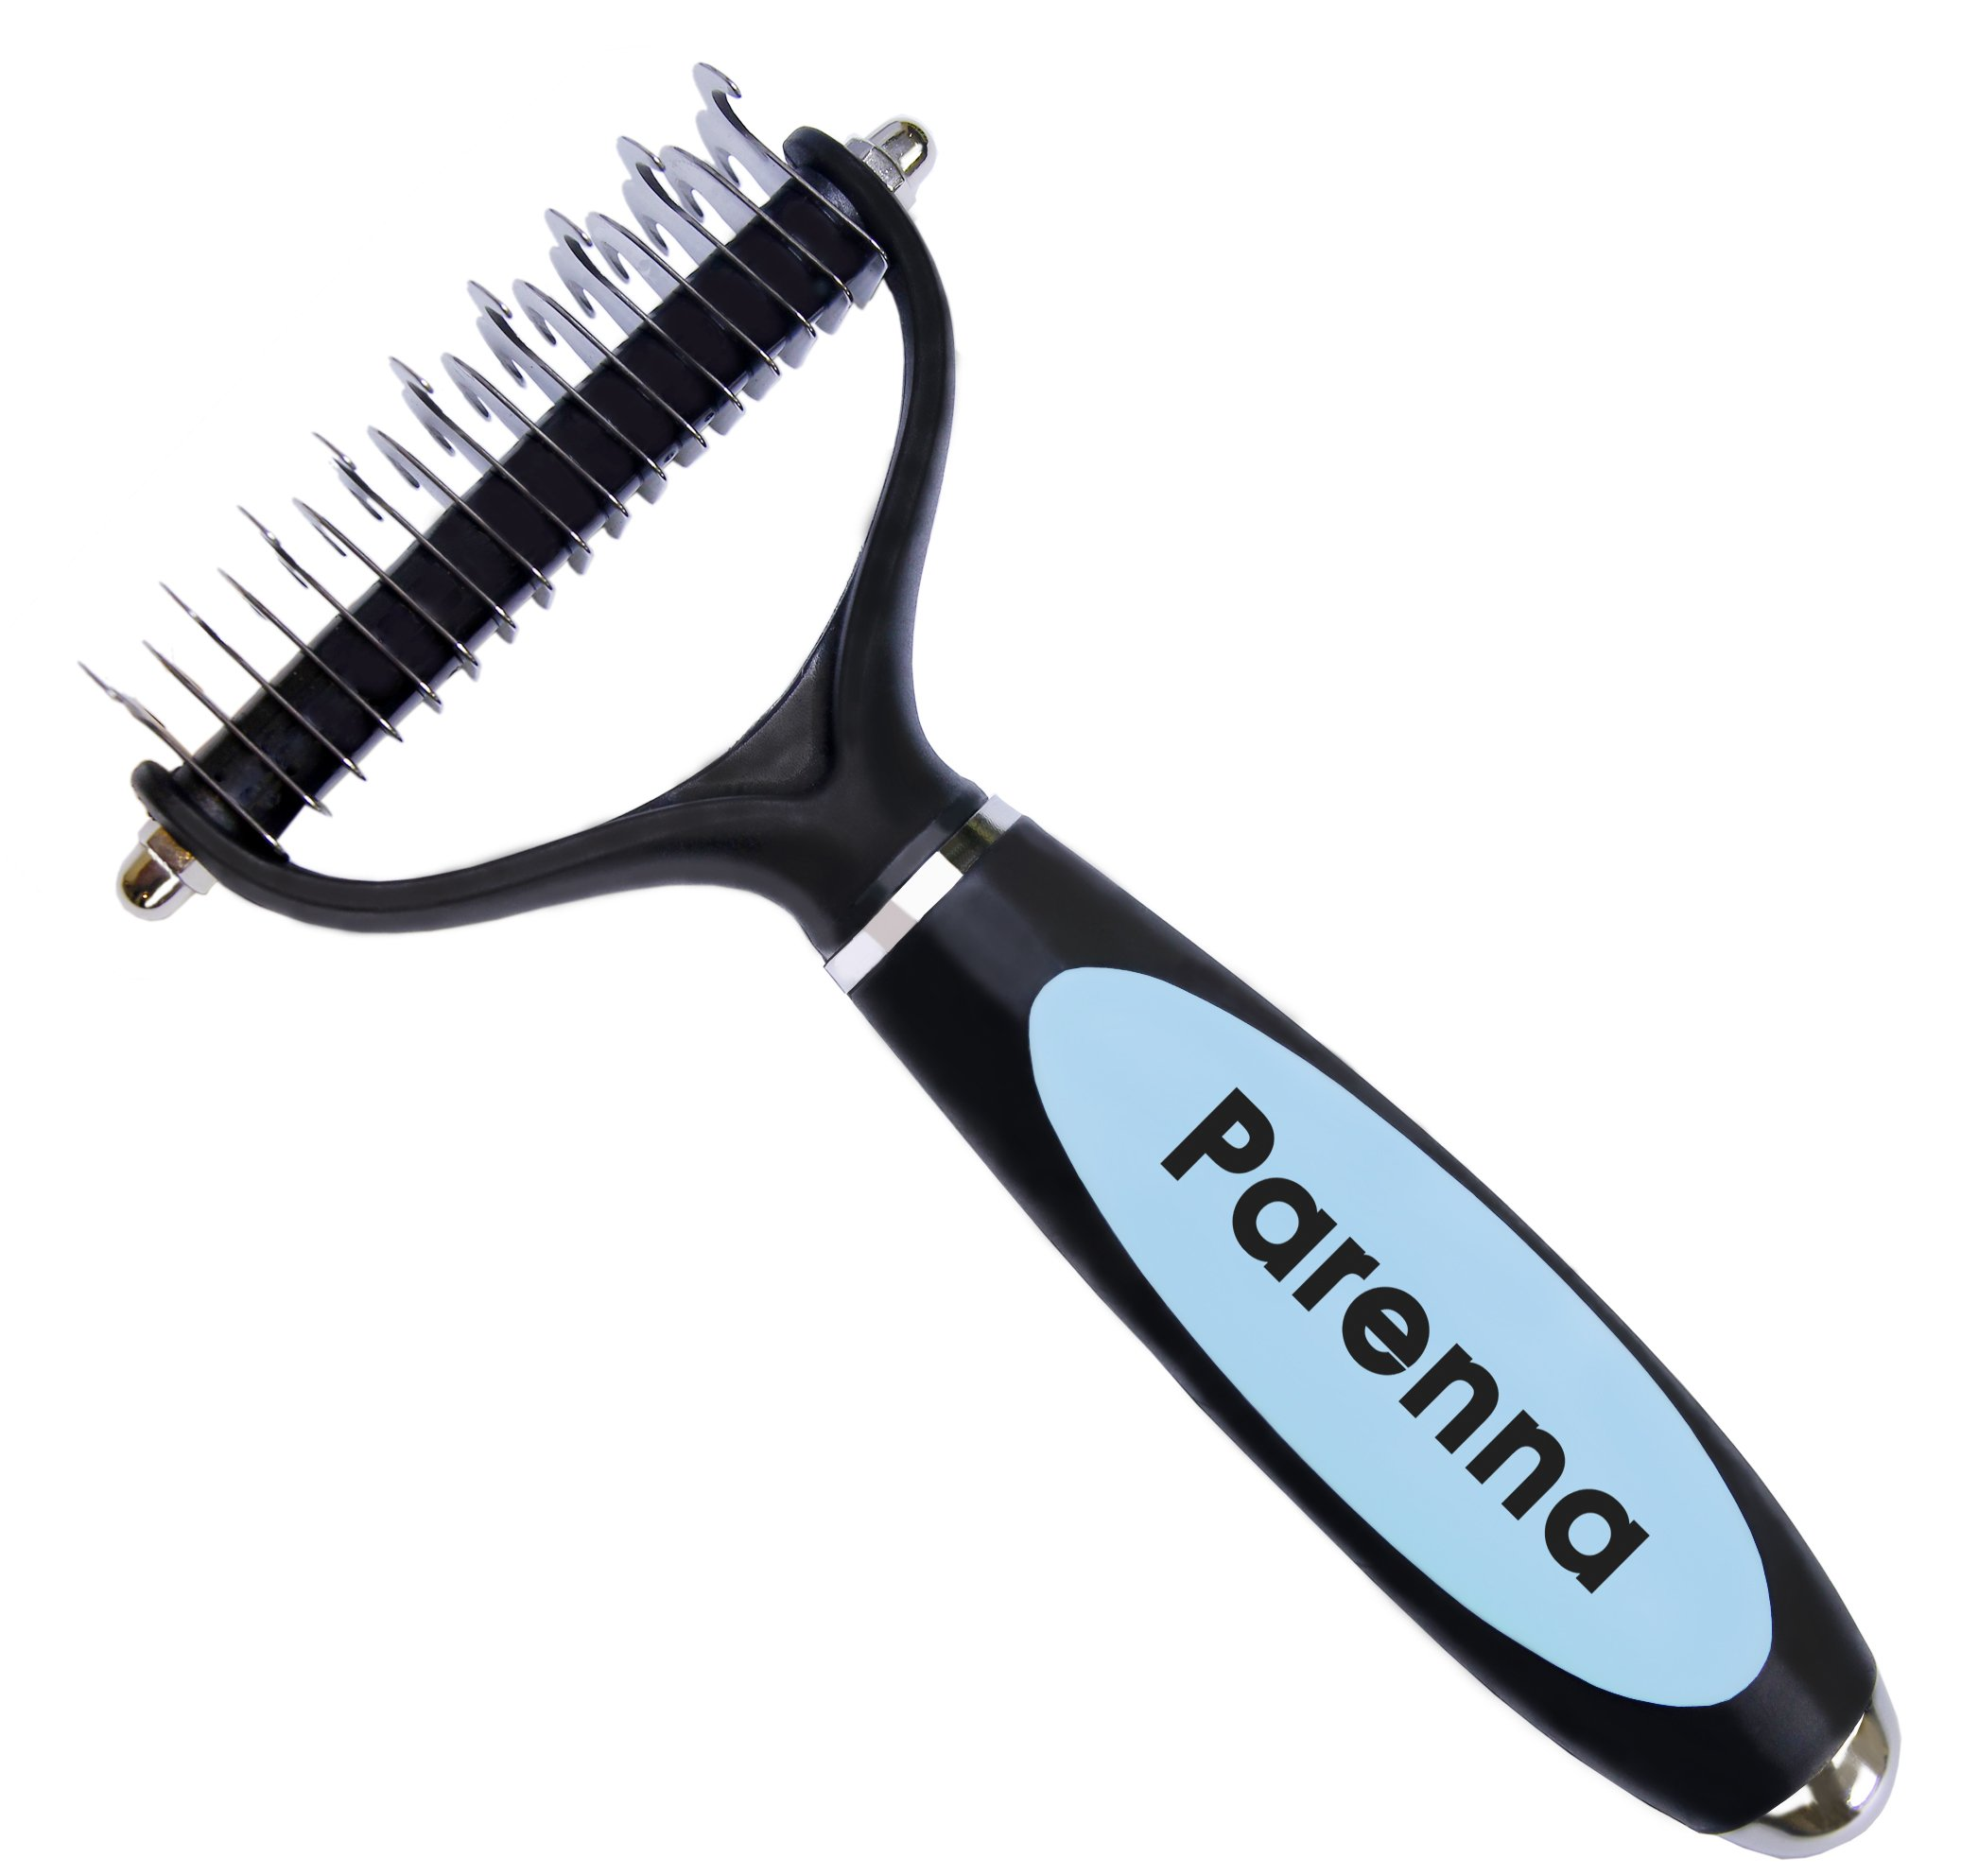 Dematting Tool for Dogs, Professional Dog Grooming Tool for Undercoat Removal and Shedding Reducing, Perfect for Medium and Long Hair Coat Dogs. B-yond Pro Dog Grooming Tool by Parenna